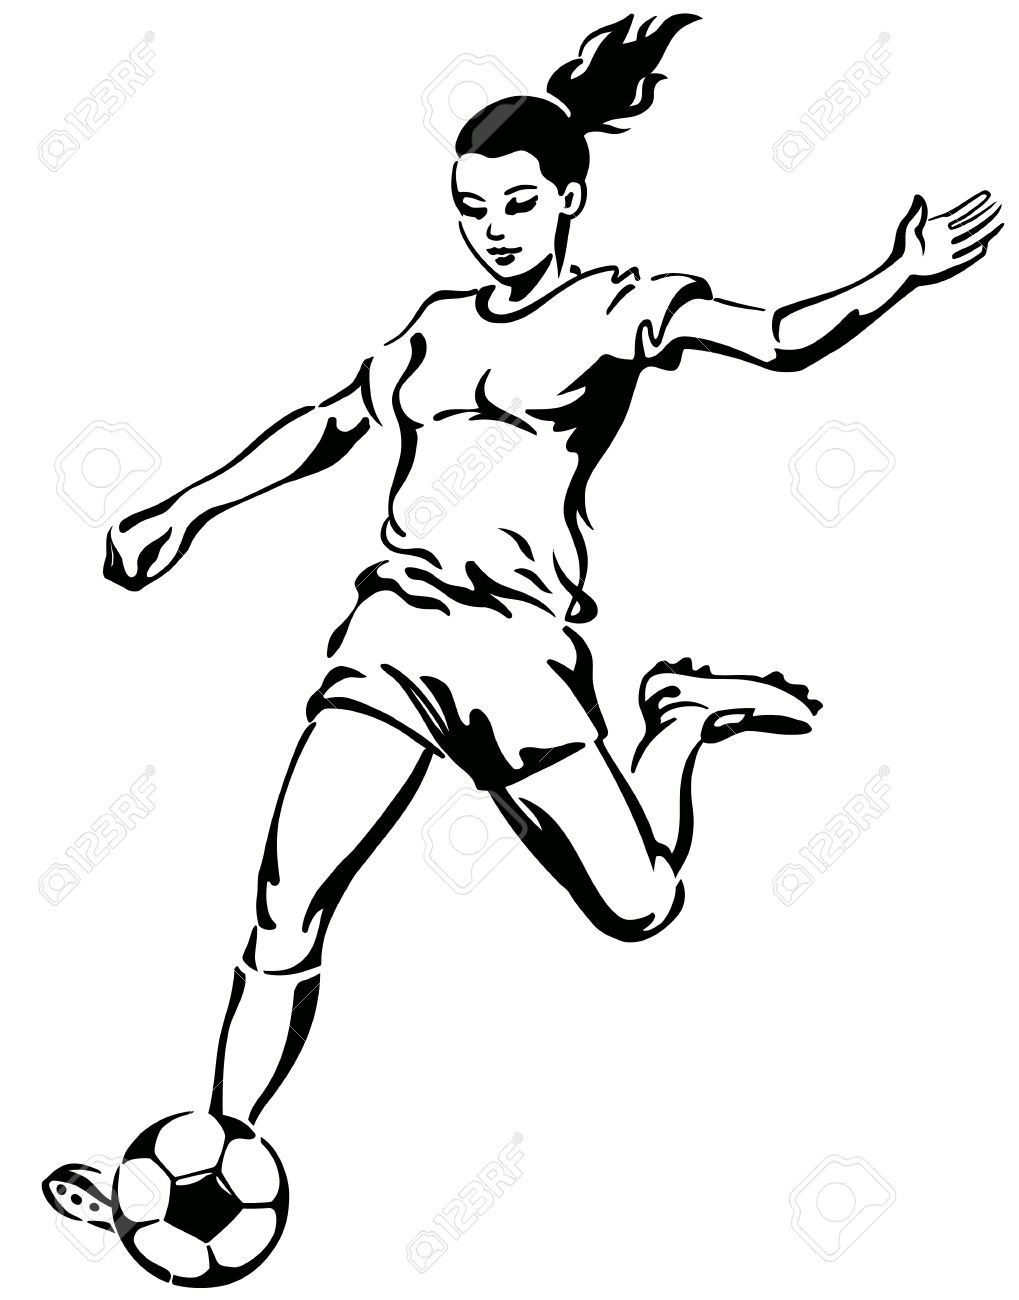 13,230 Soccer Women Stock Vector Illustration And Royalty Free.